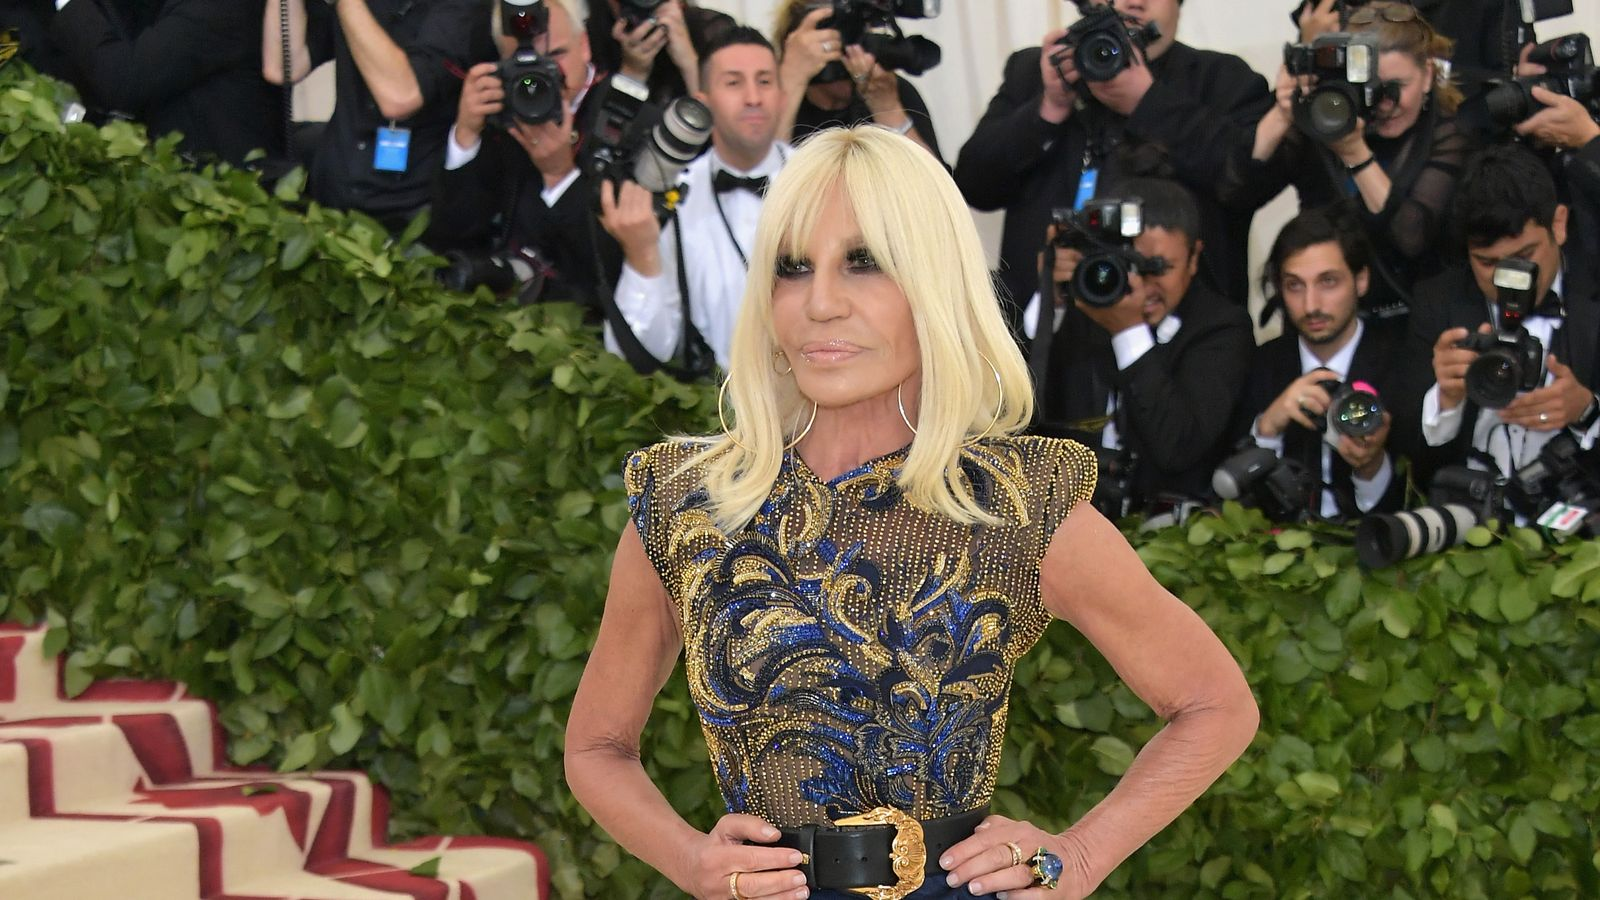 Versace bought by Michael Kors for $2.1bn